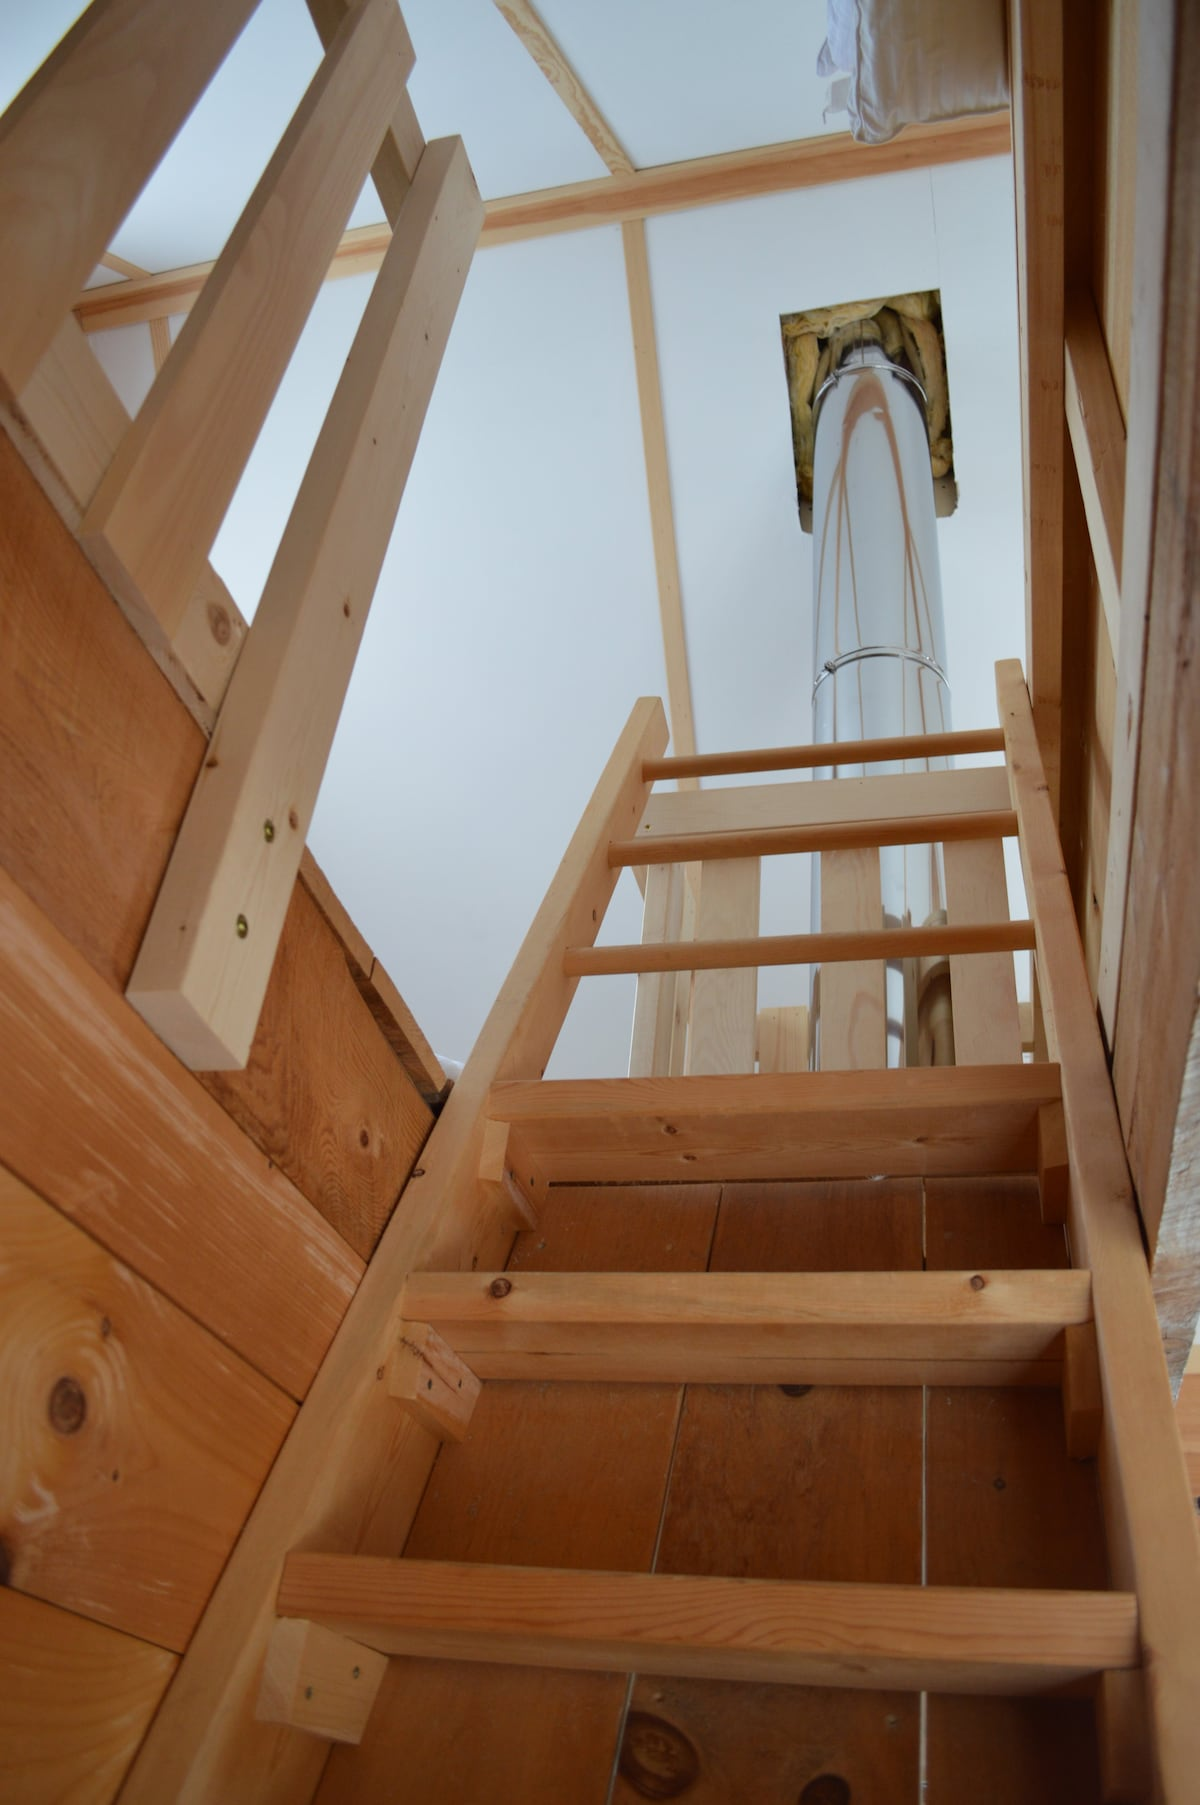 Ladder to sleeping loft with double bed.